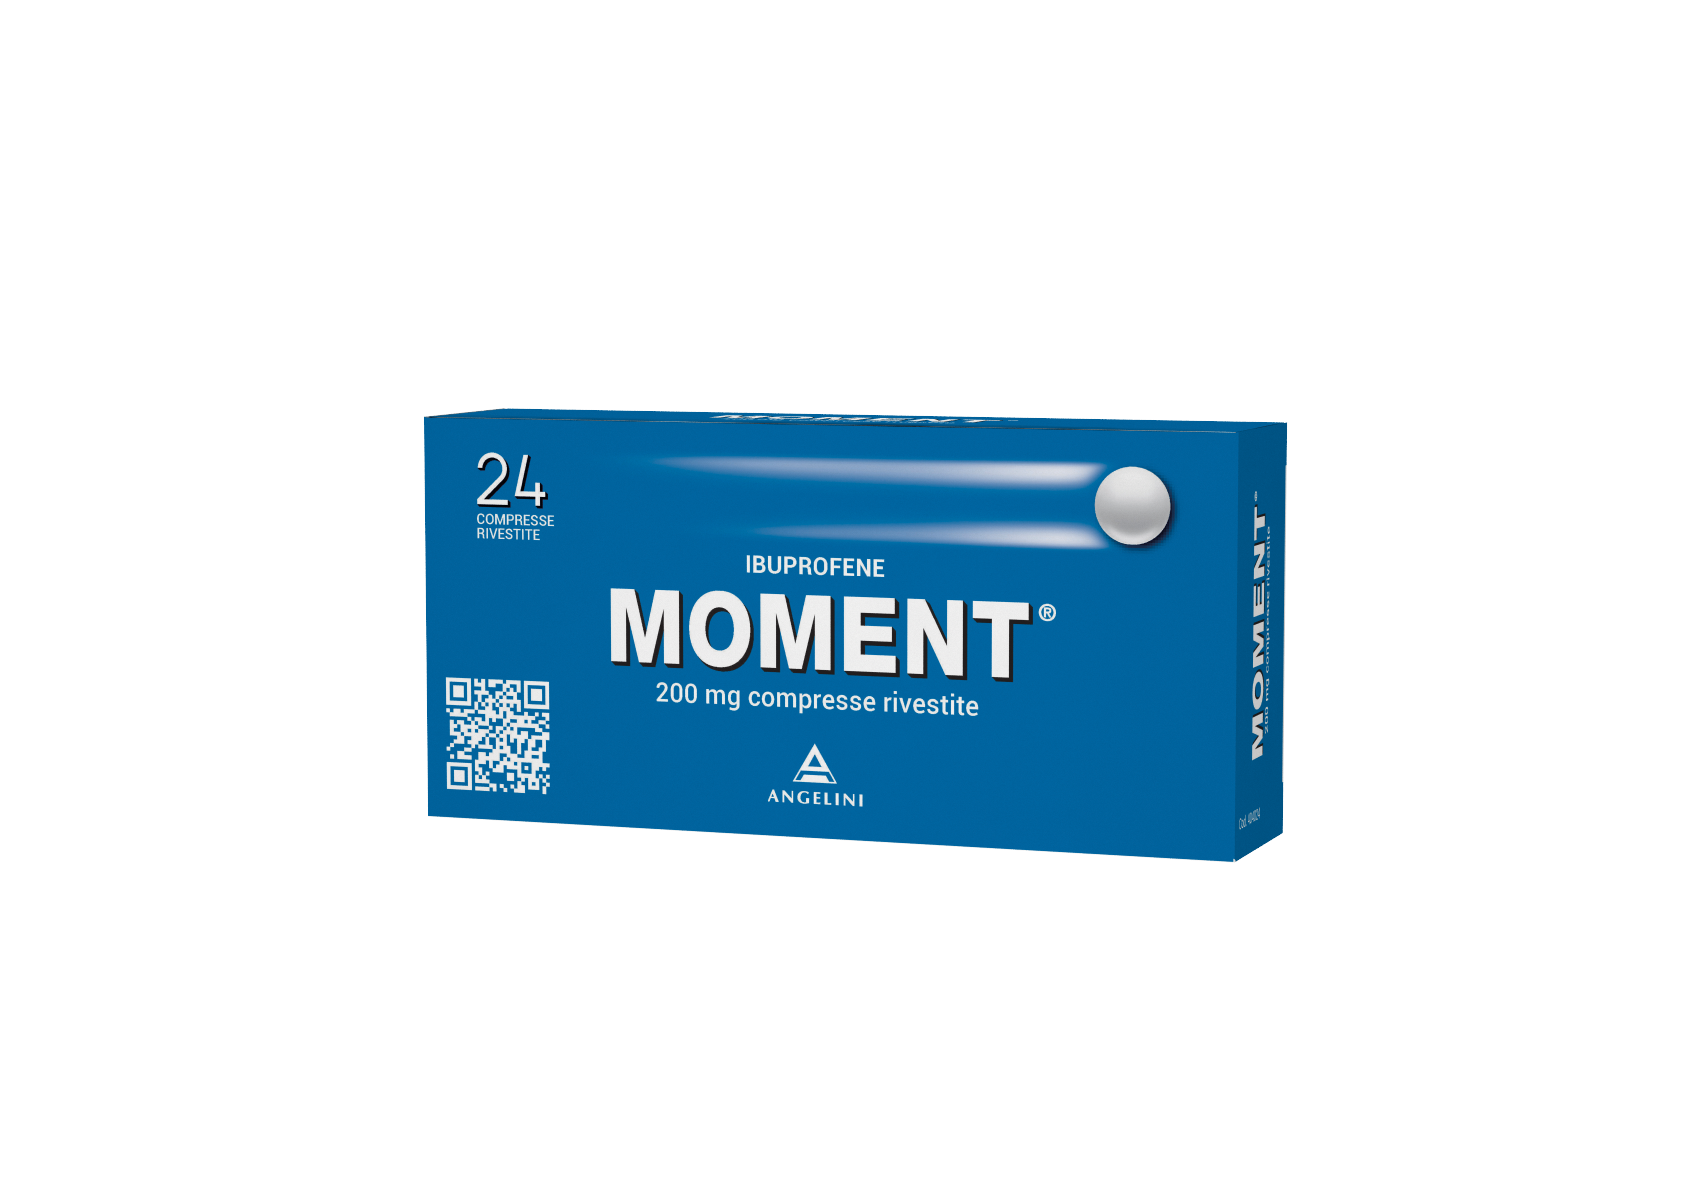 MOMENT 200mg Ibuprofene 24 Compresse  - Farmapage.it